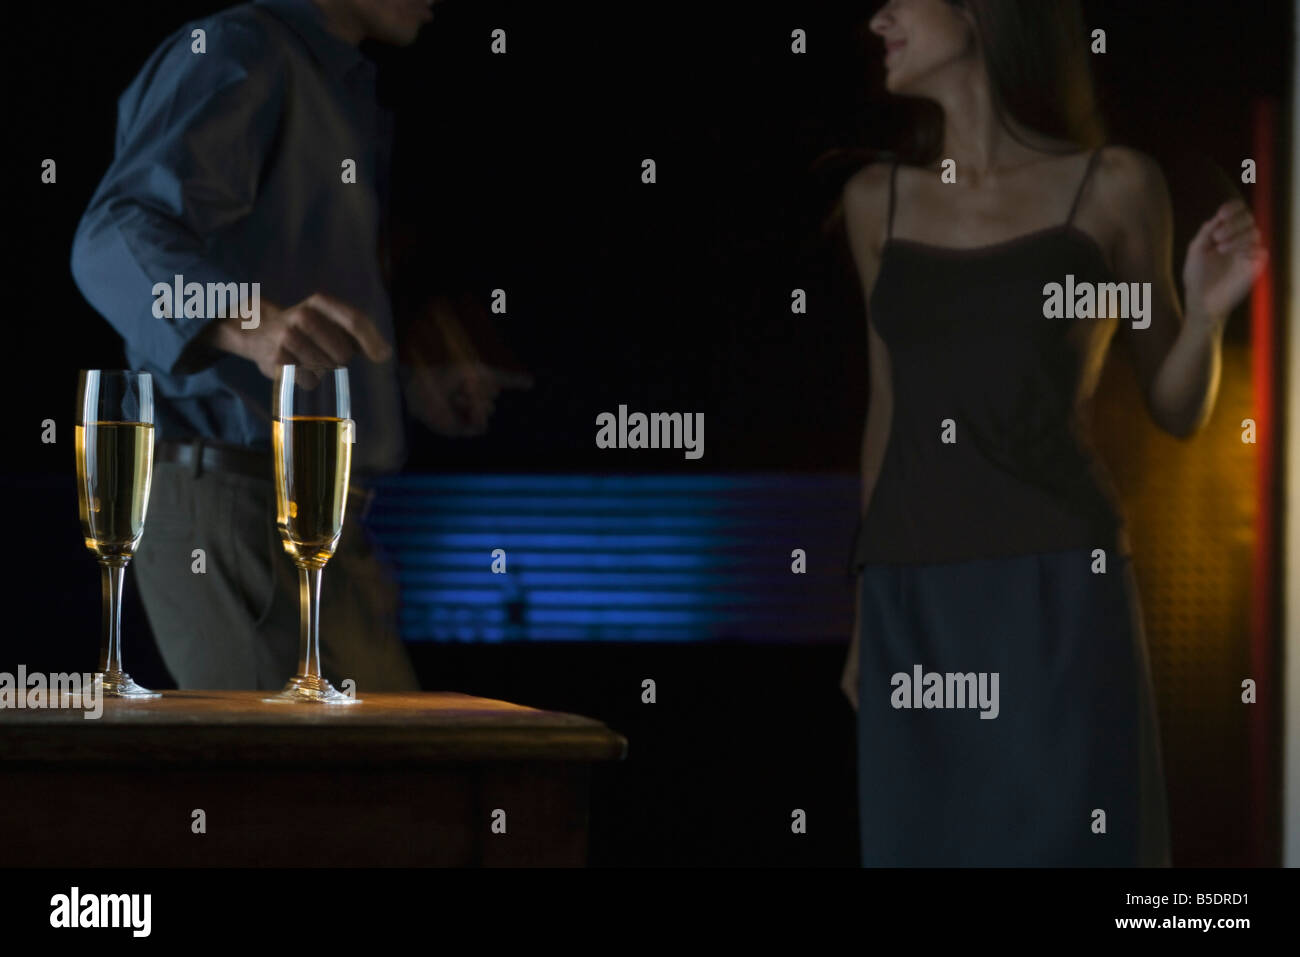 Glasses of champagne, couple dancing in darkly lit background - Stock Image